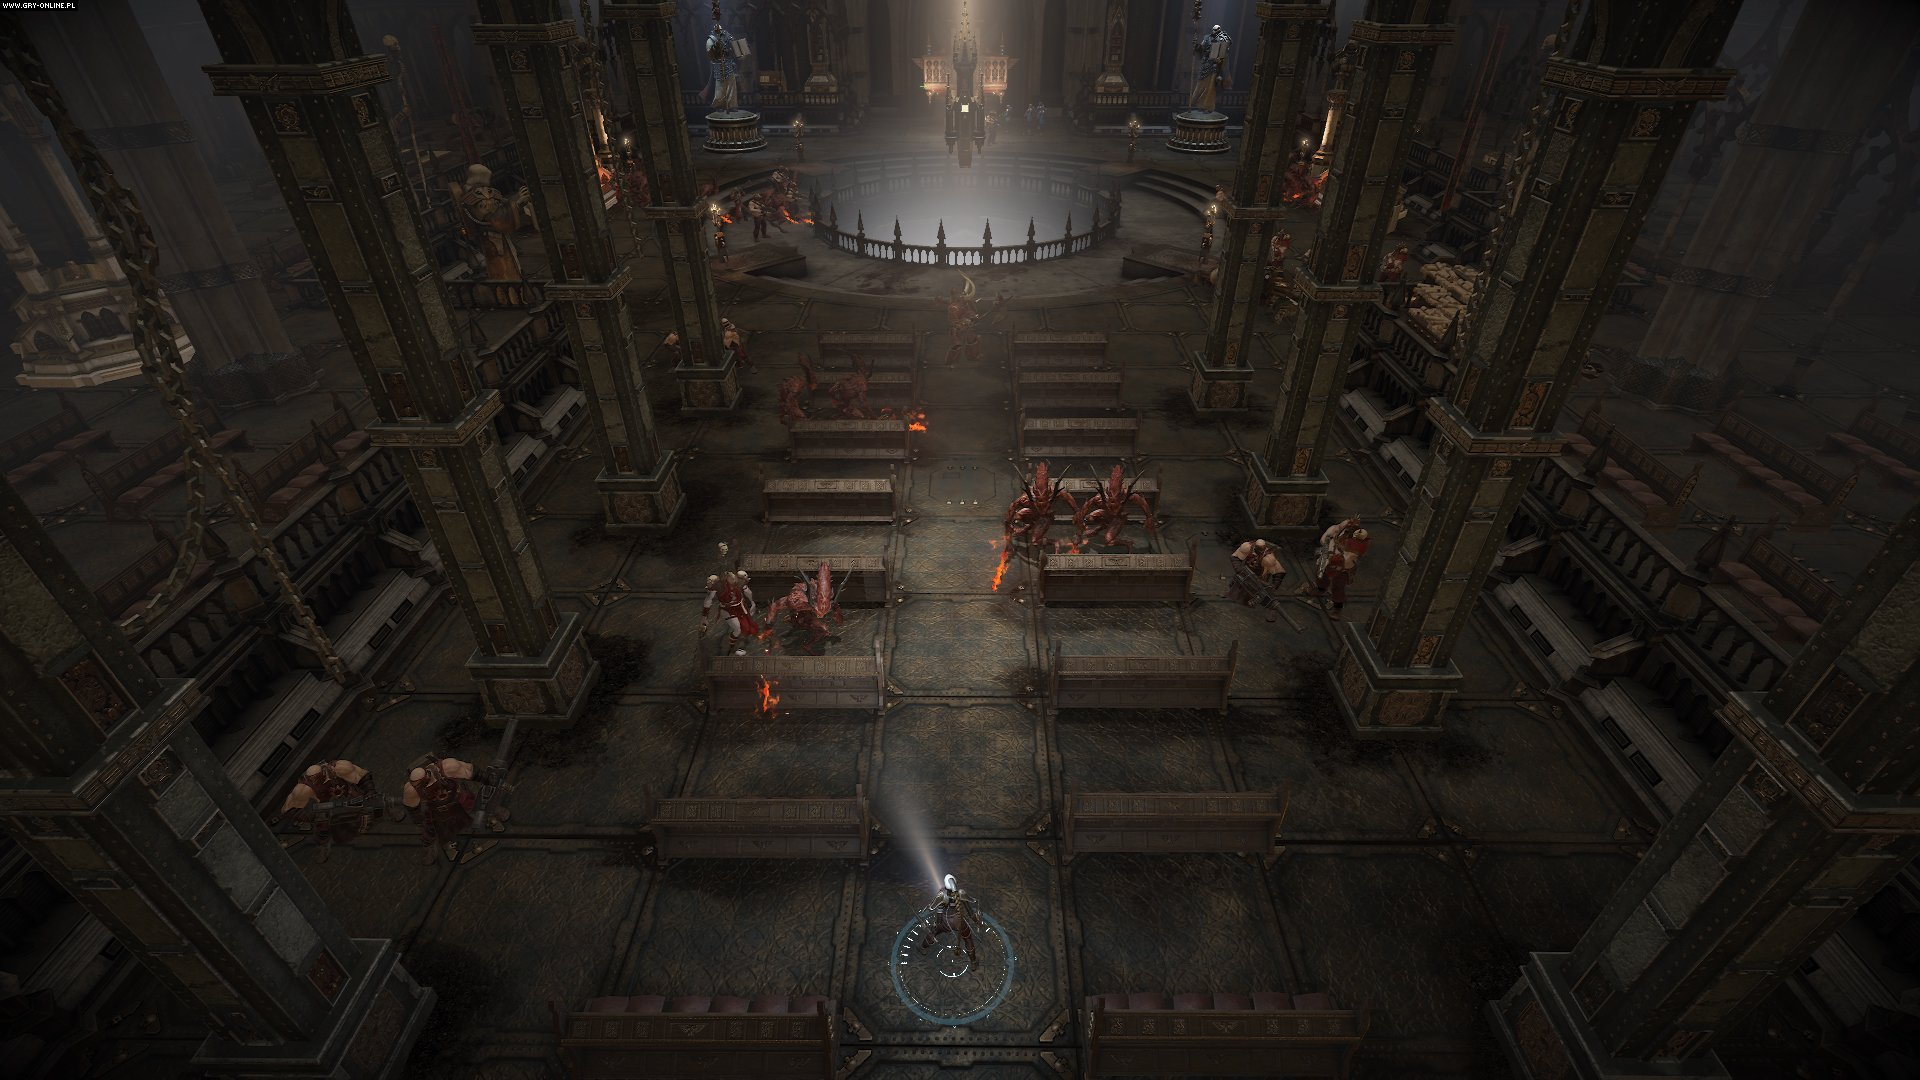 Warhammer 40,000: Inquisitor - Prophecy PC, PS4, XONE Games Image 5/9, NeocoreGames